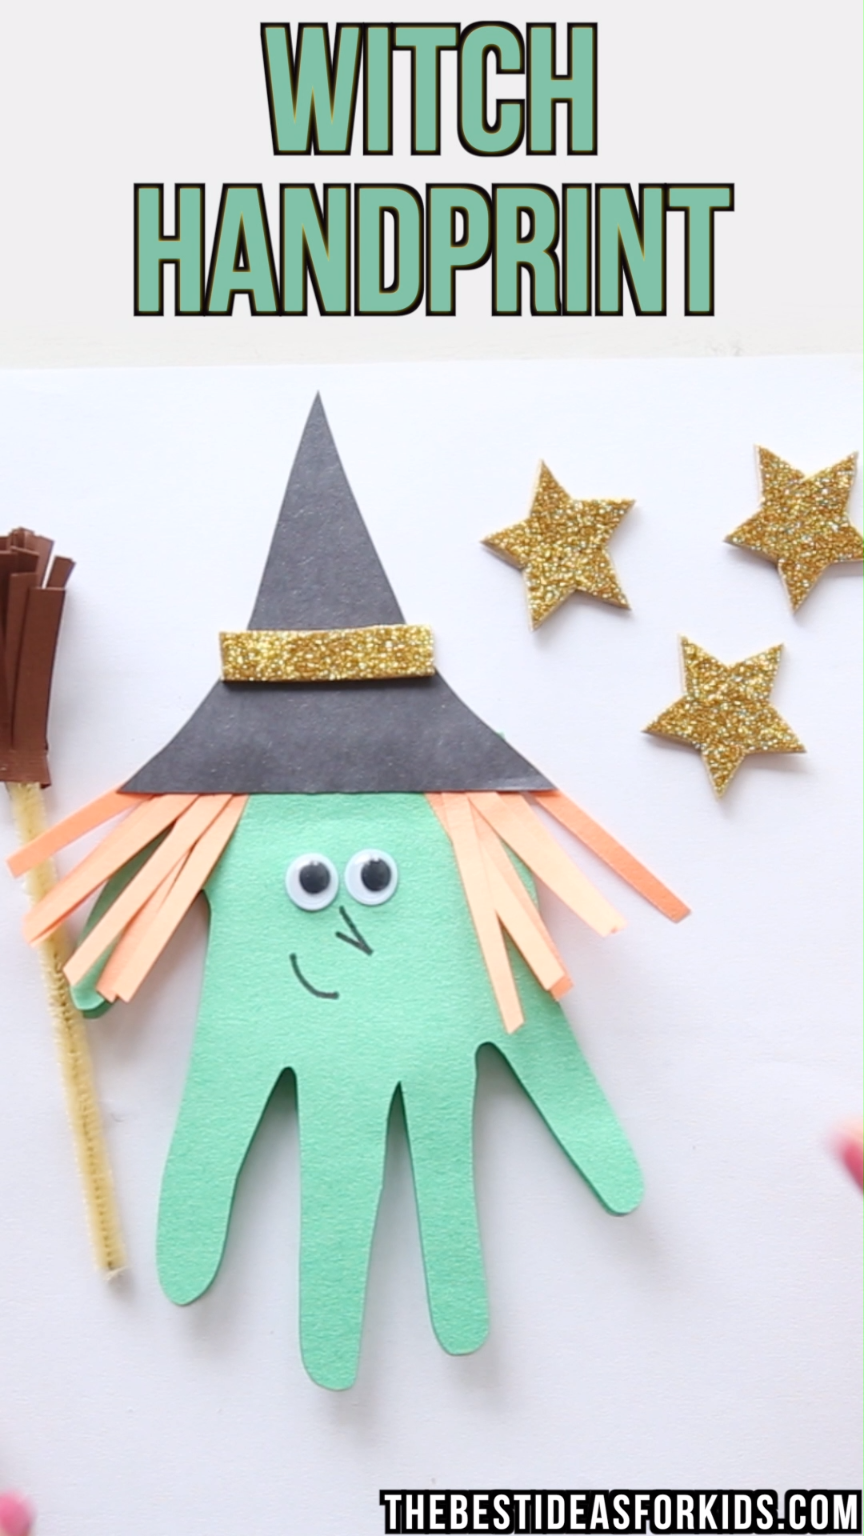 Handprint Witch - The Best Ideas for Kids